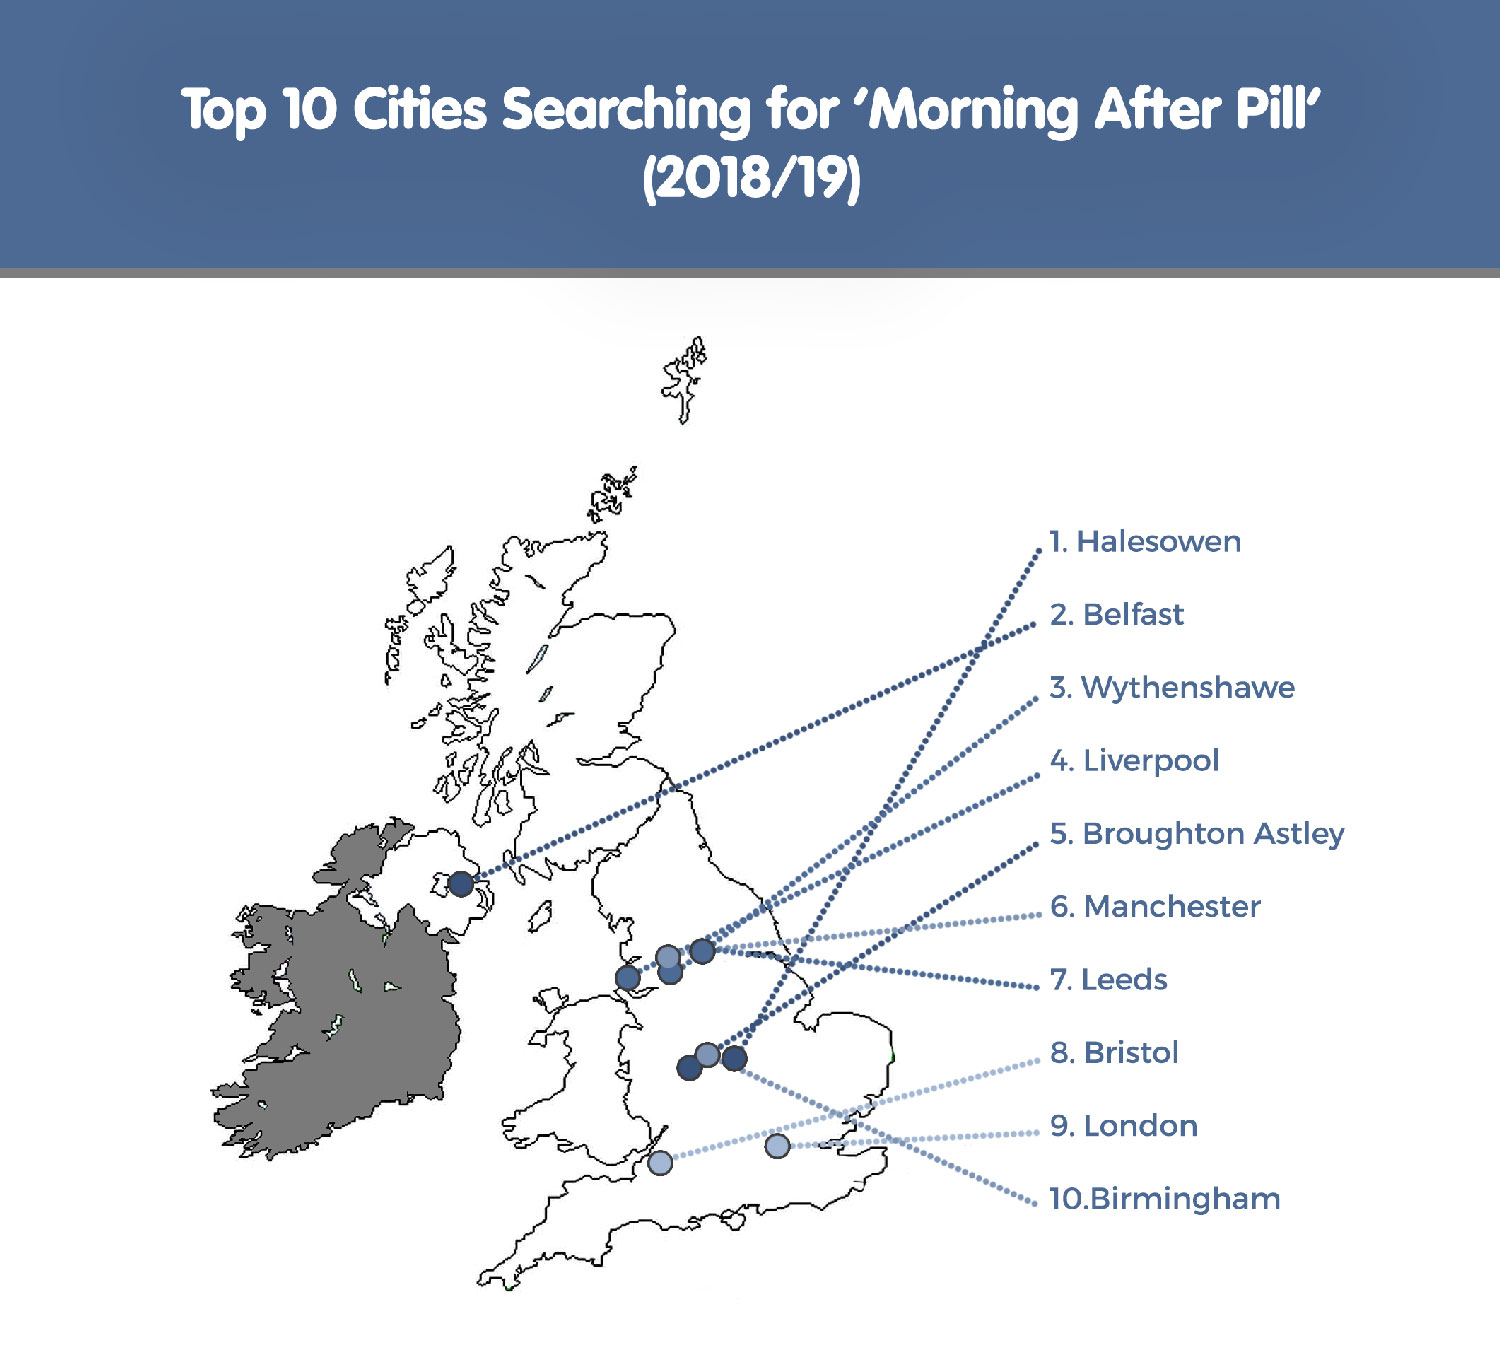 Morning after pill searches by city